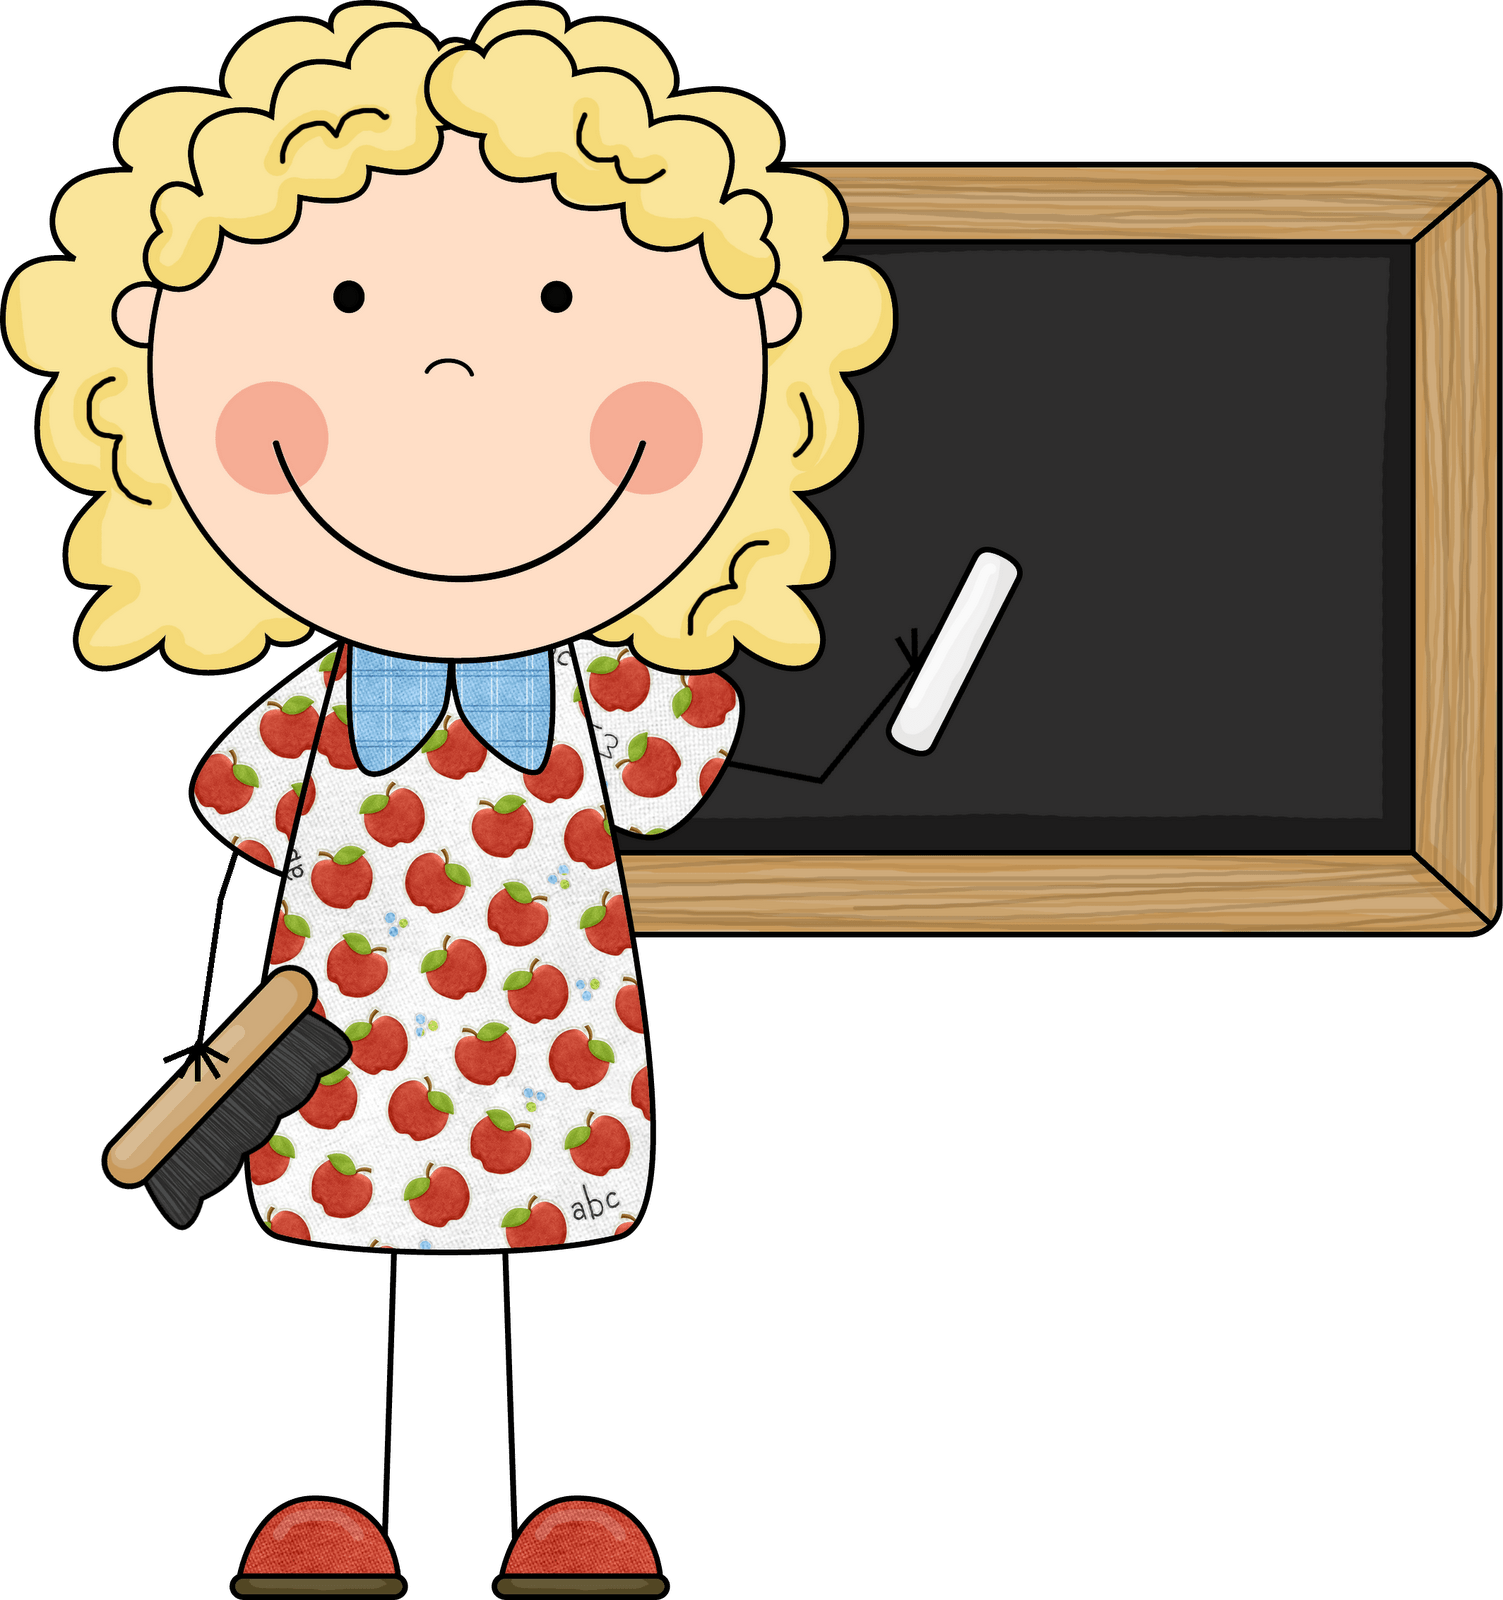 Clip art for teacher